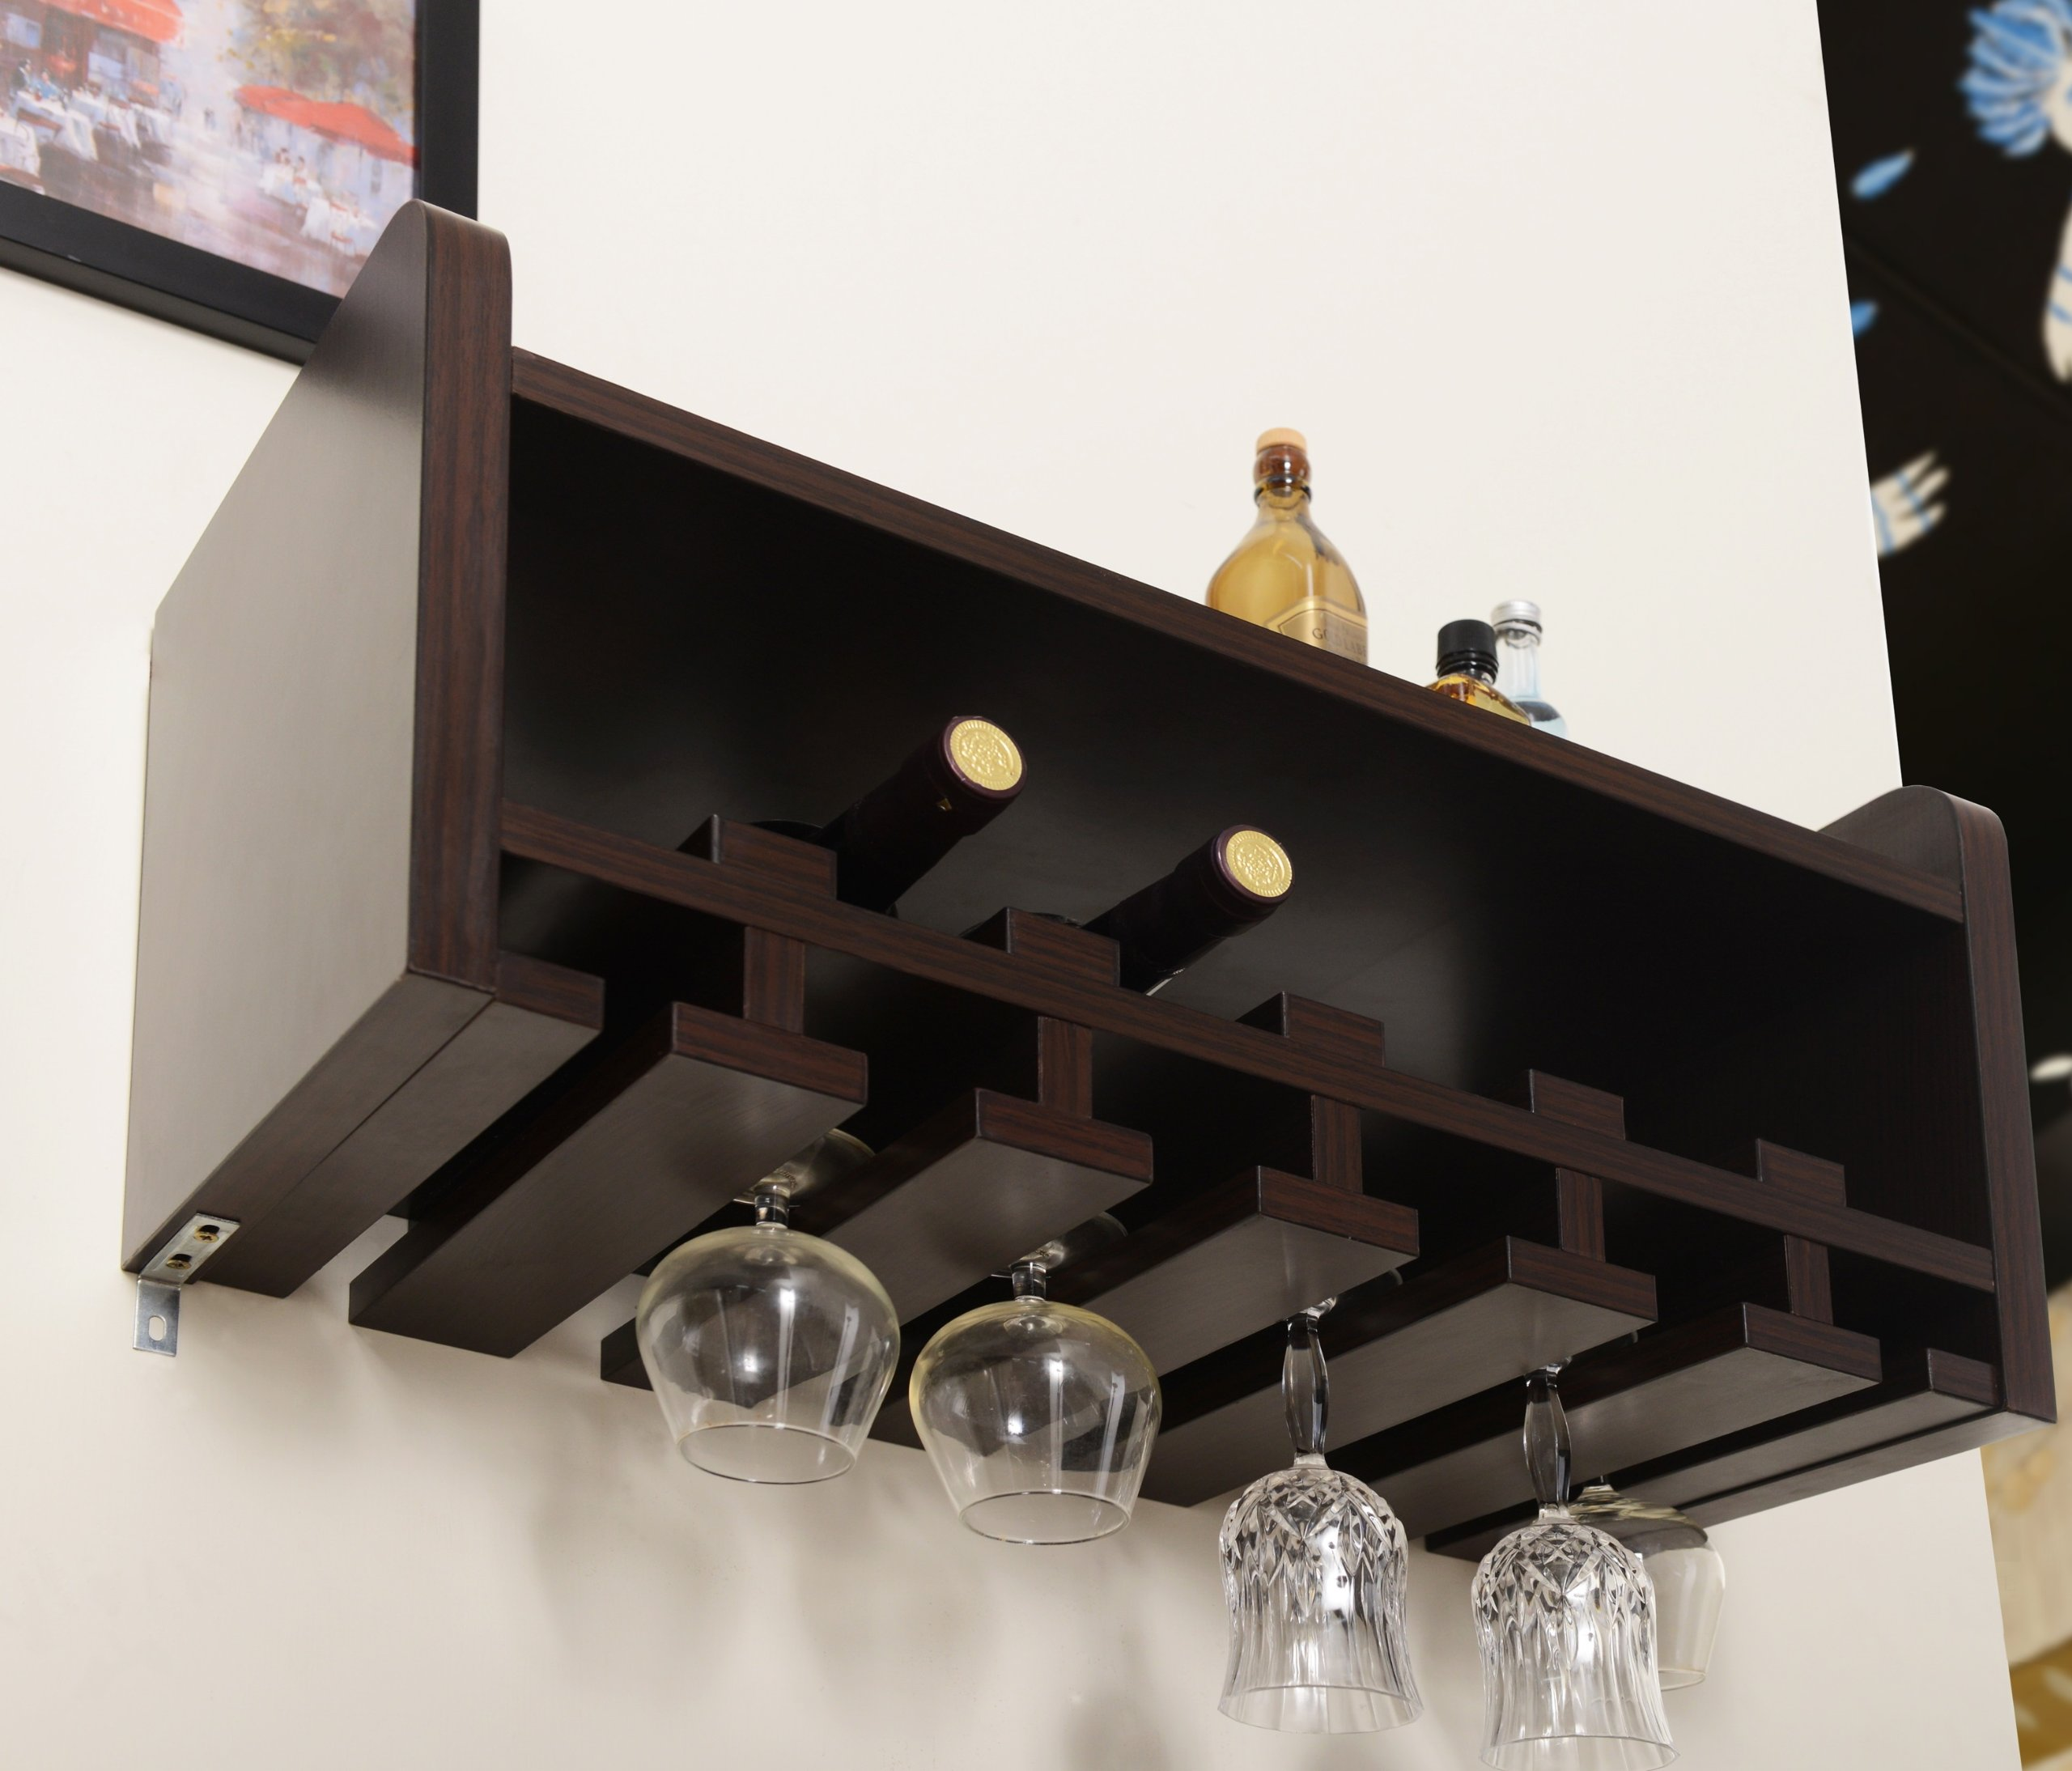 ioHOMES Venire Wall-Mounted Wine Rack and Glass Holder, Walnut by HOMES: Inside + Out